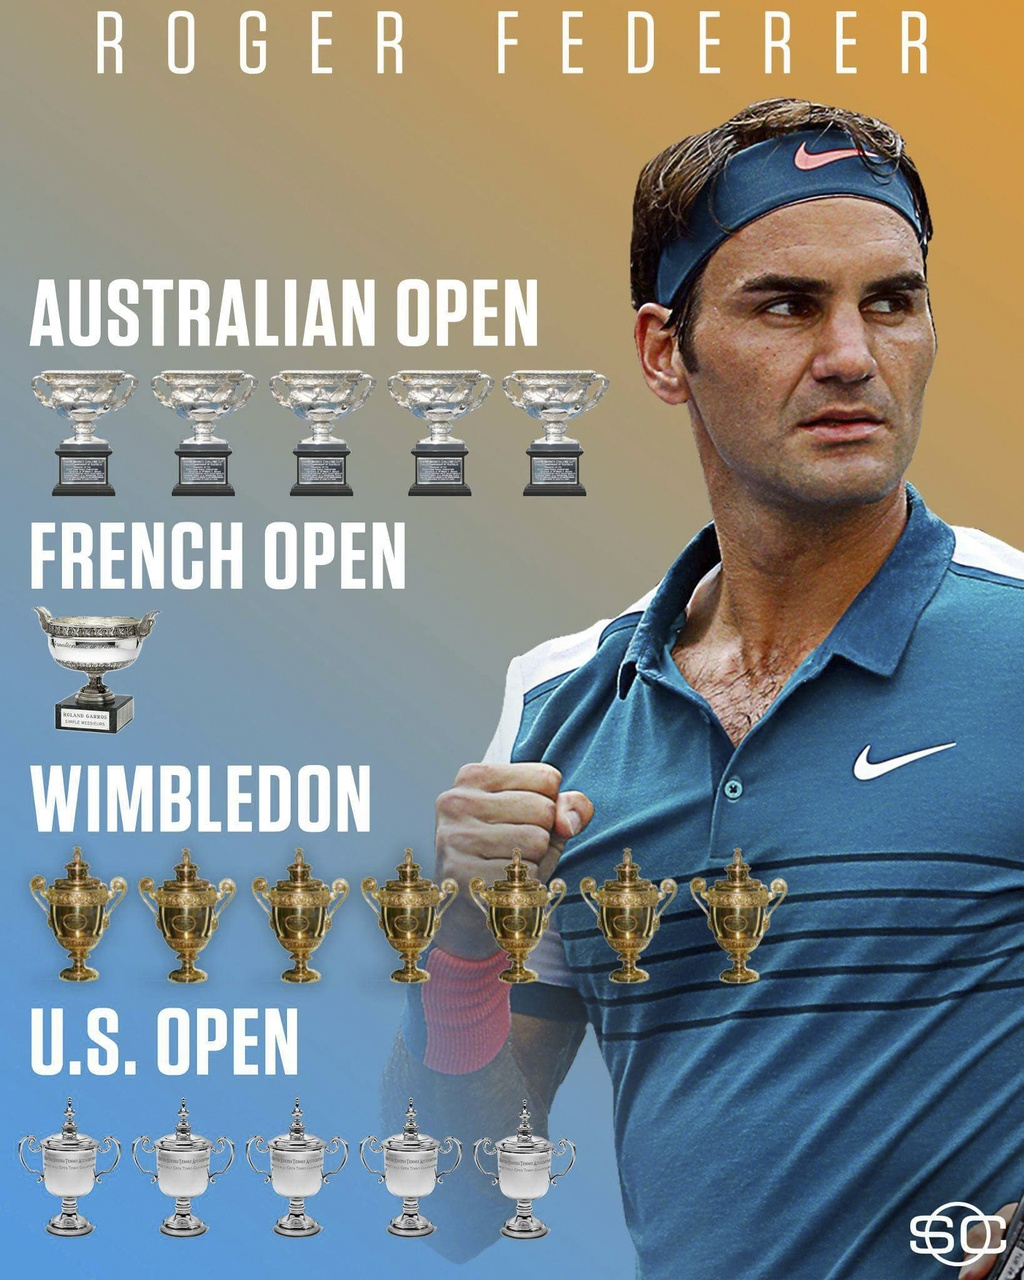 Federer va cup vo dich trong vong vay nguoi ham mo hinh anh 8